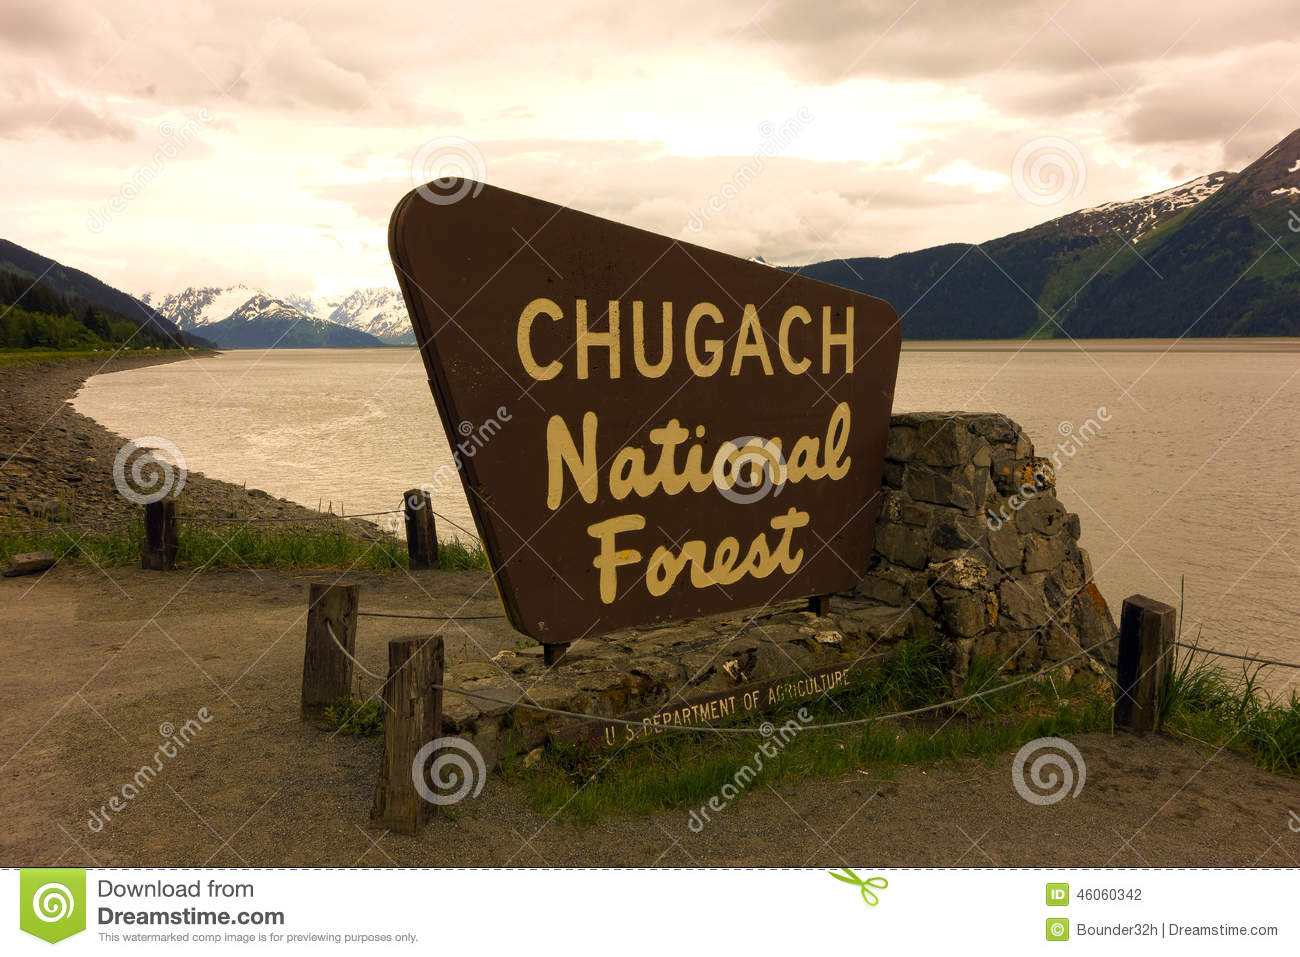 A welcoming sign at the chugach national forest